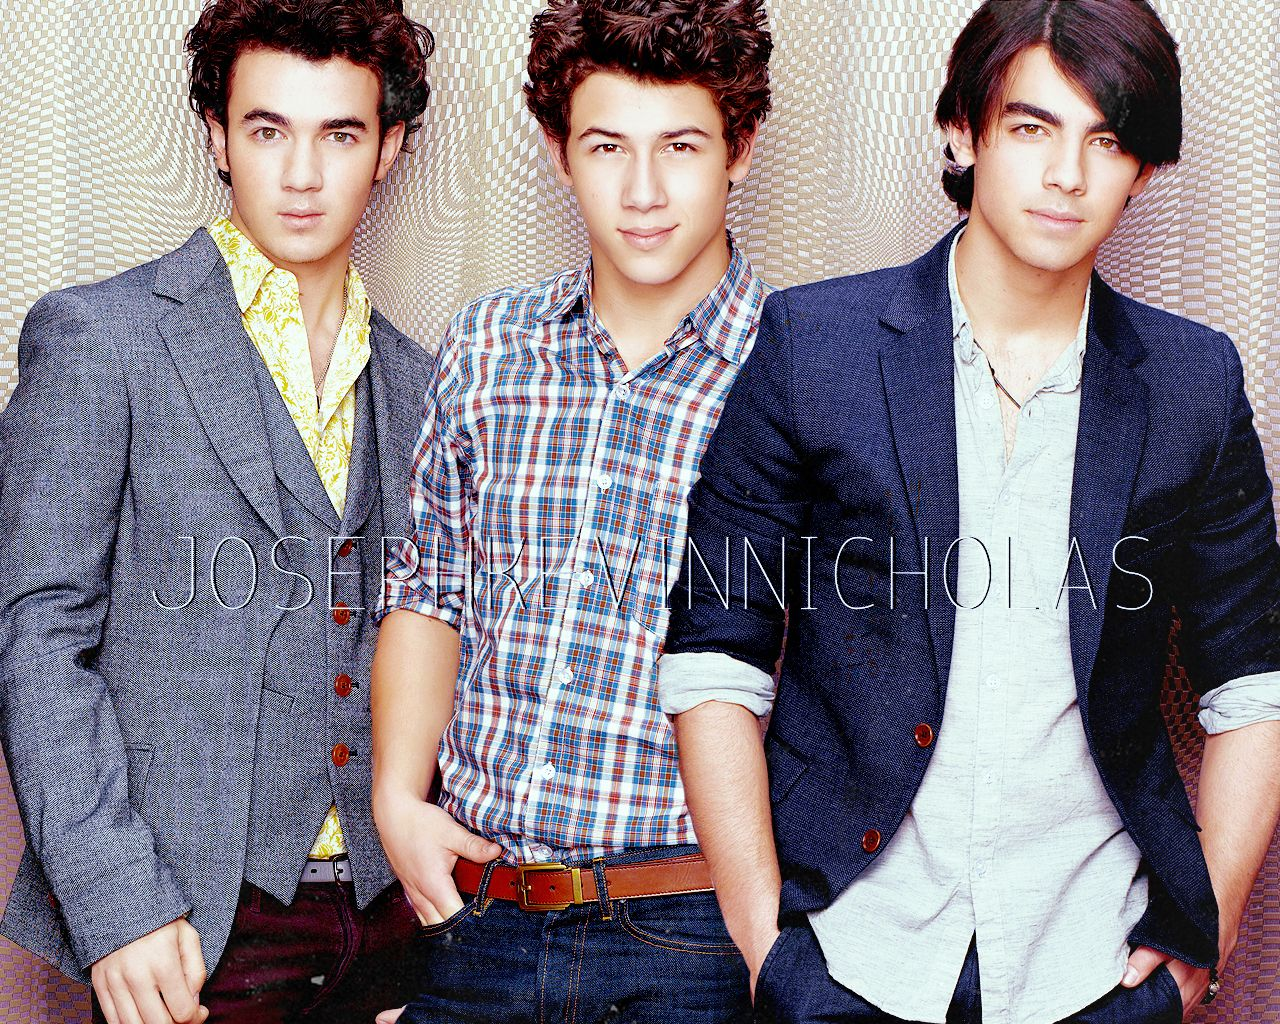 post the best pic of the jonas brothdr together - Jonas Brothers ...